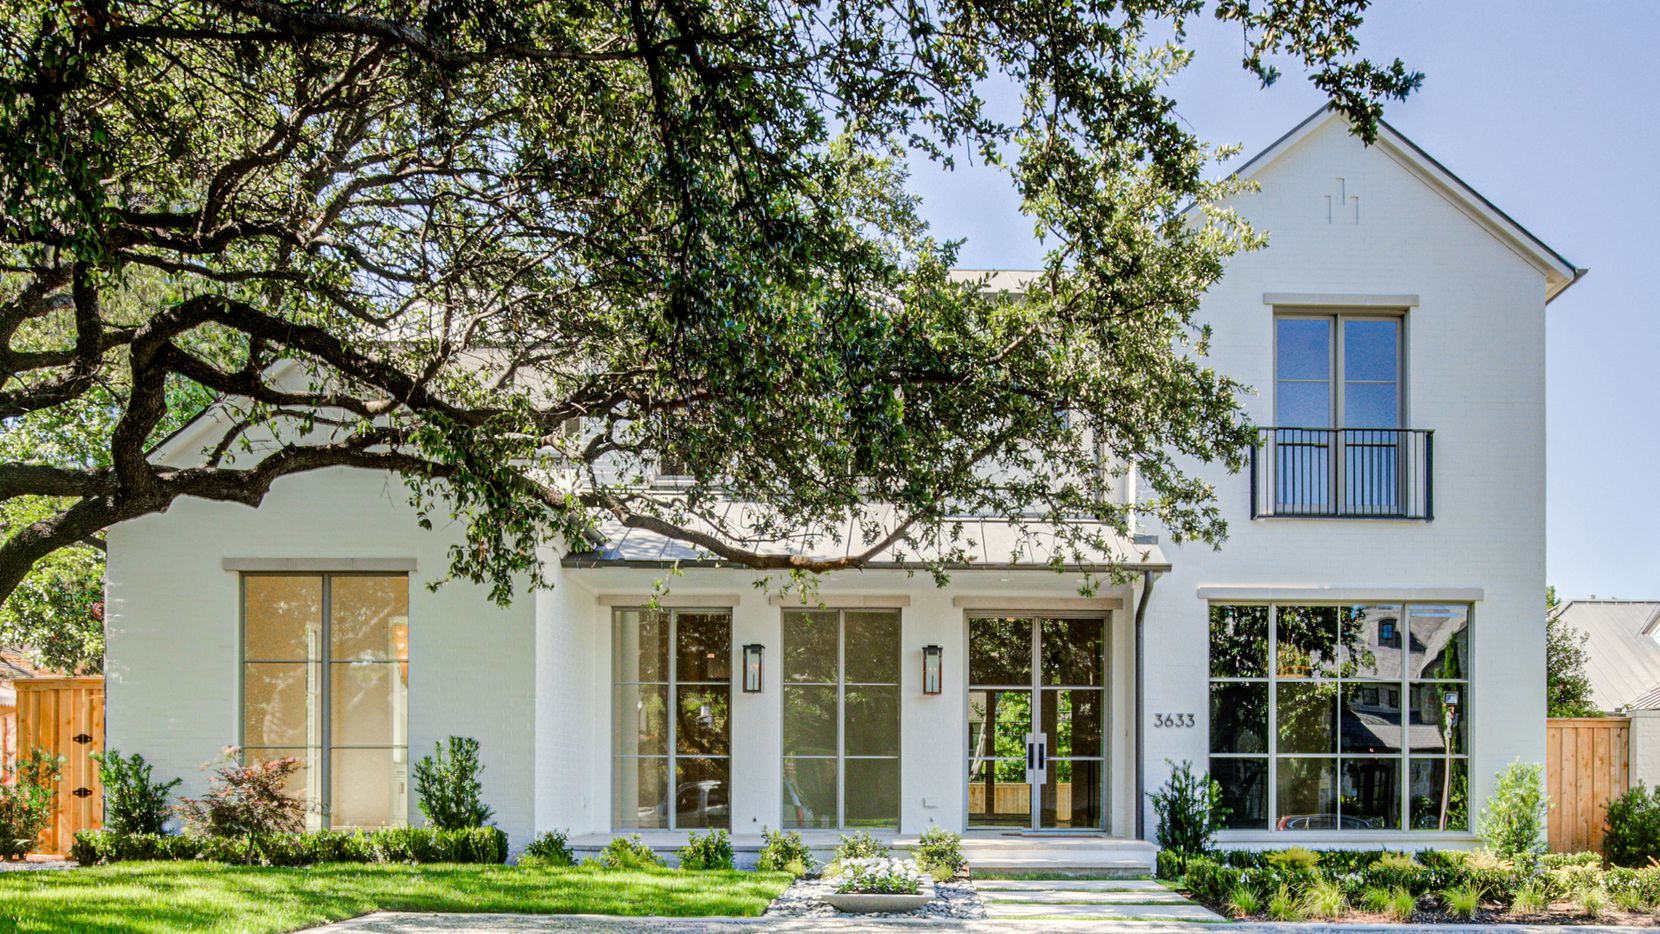 According to the National Association of Realtors, pending home sales jumped in May. Allie Beth Allman & Associates has seen the same increase in the Dallas market.